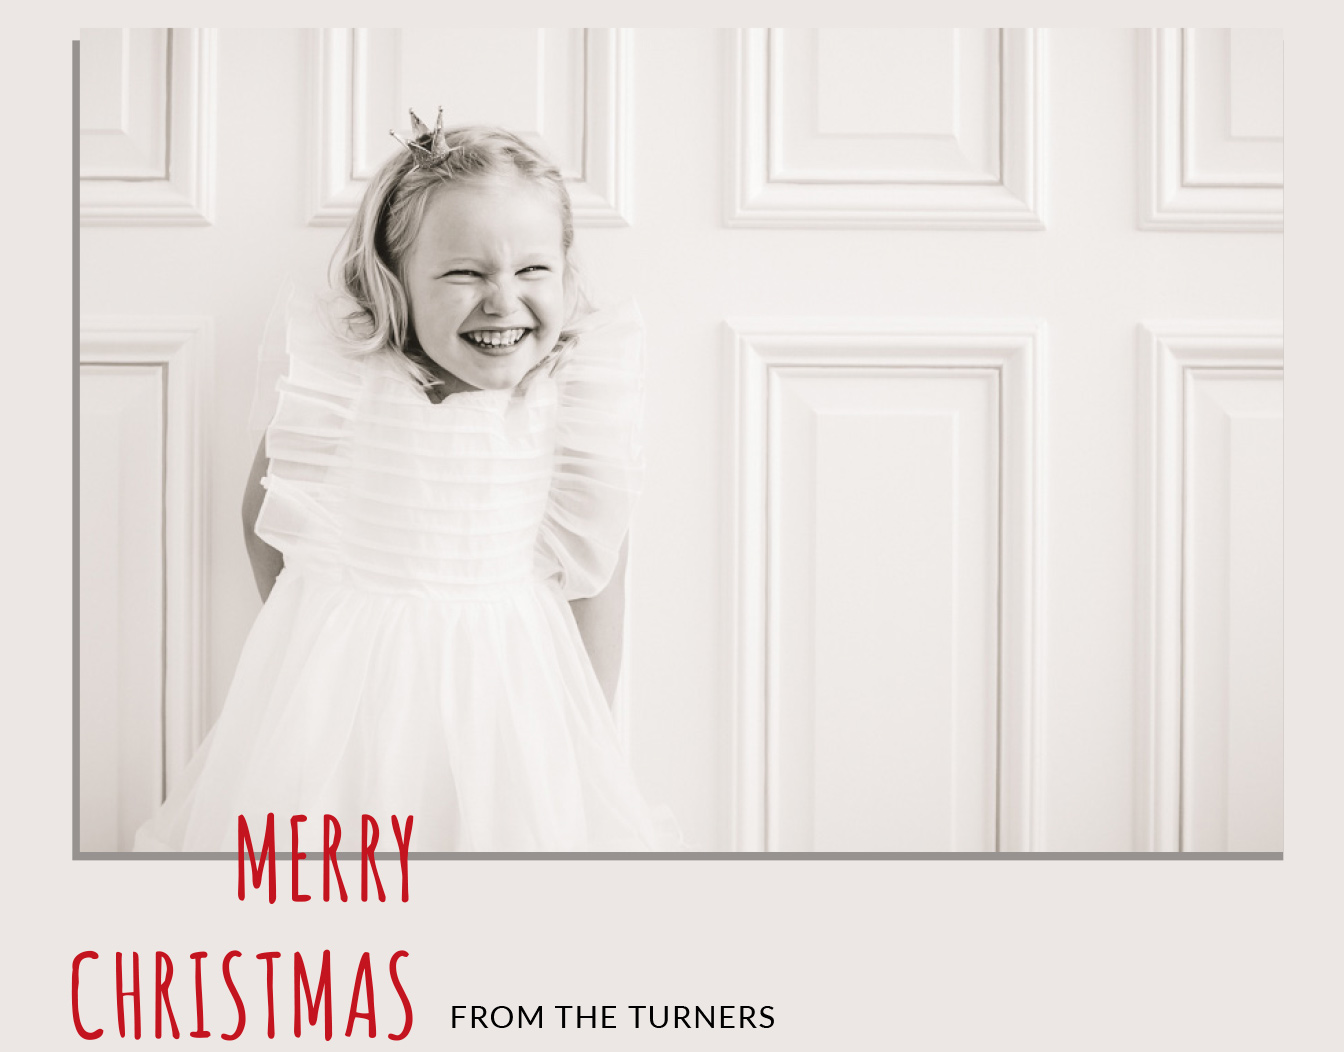 White Christmas card with uploaded kid's photo